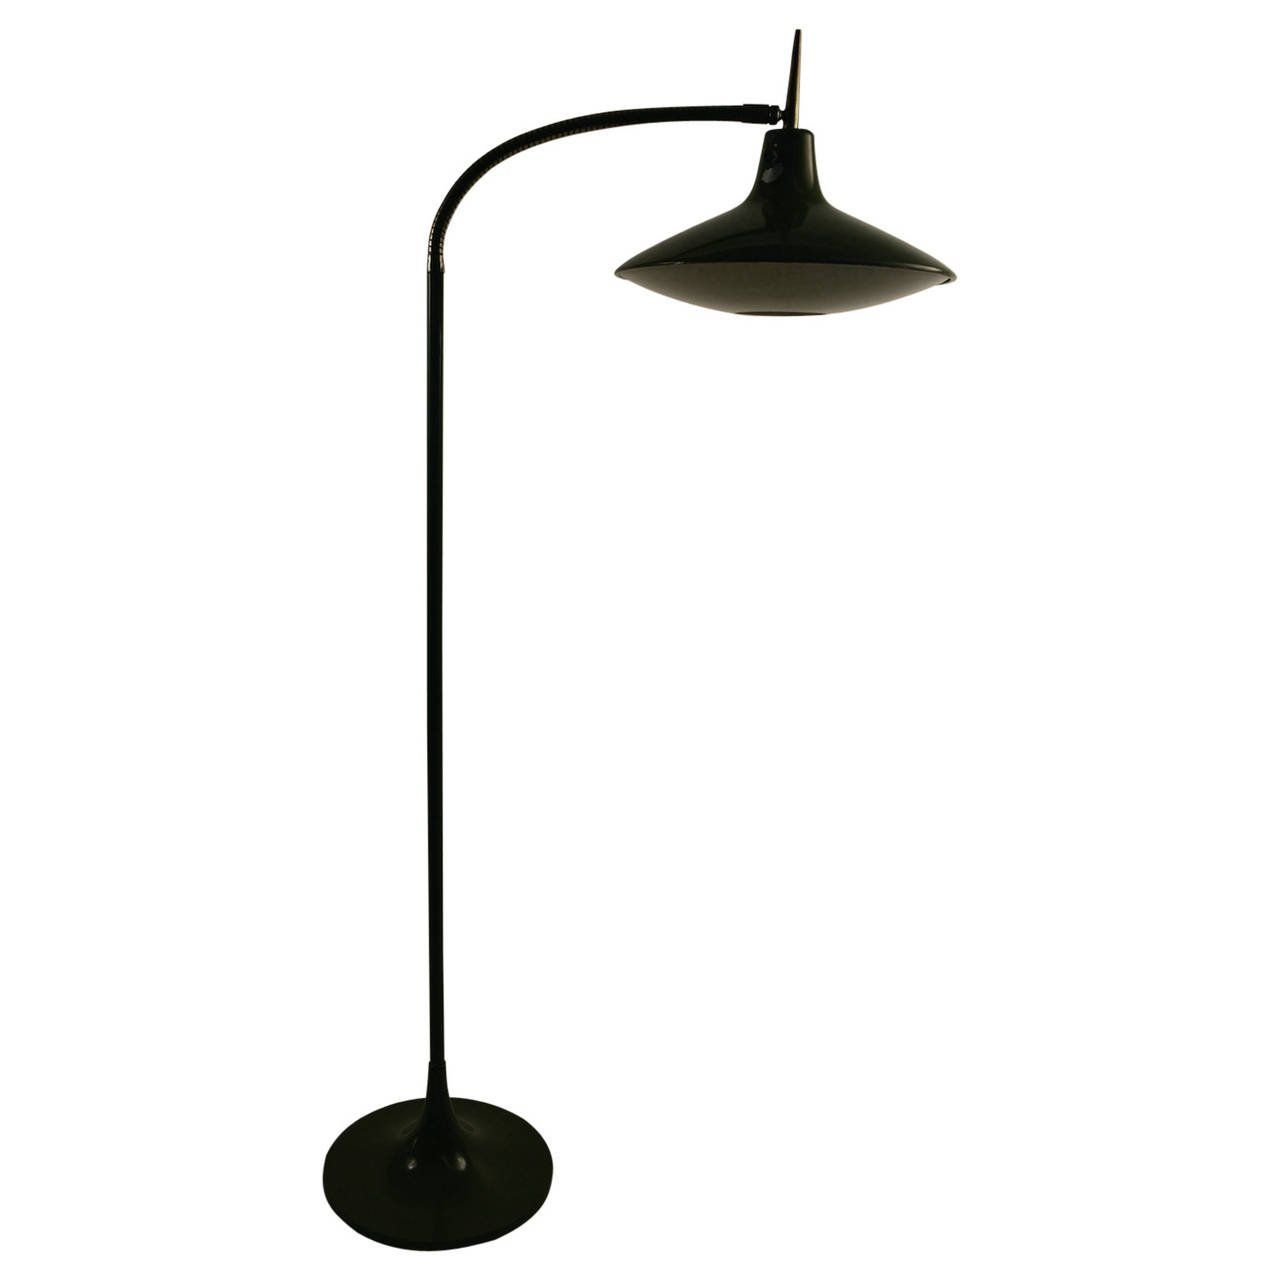 A Mid Century Modern Gooseneck Floor Lamp With Two Cone Shaped